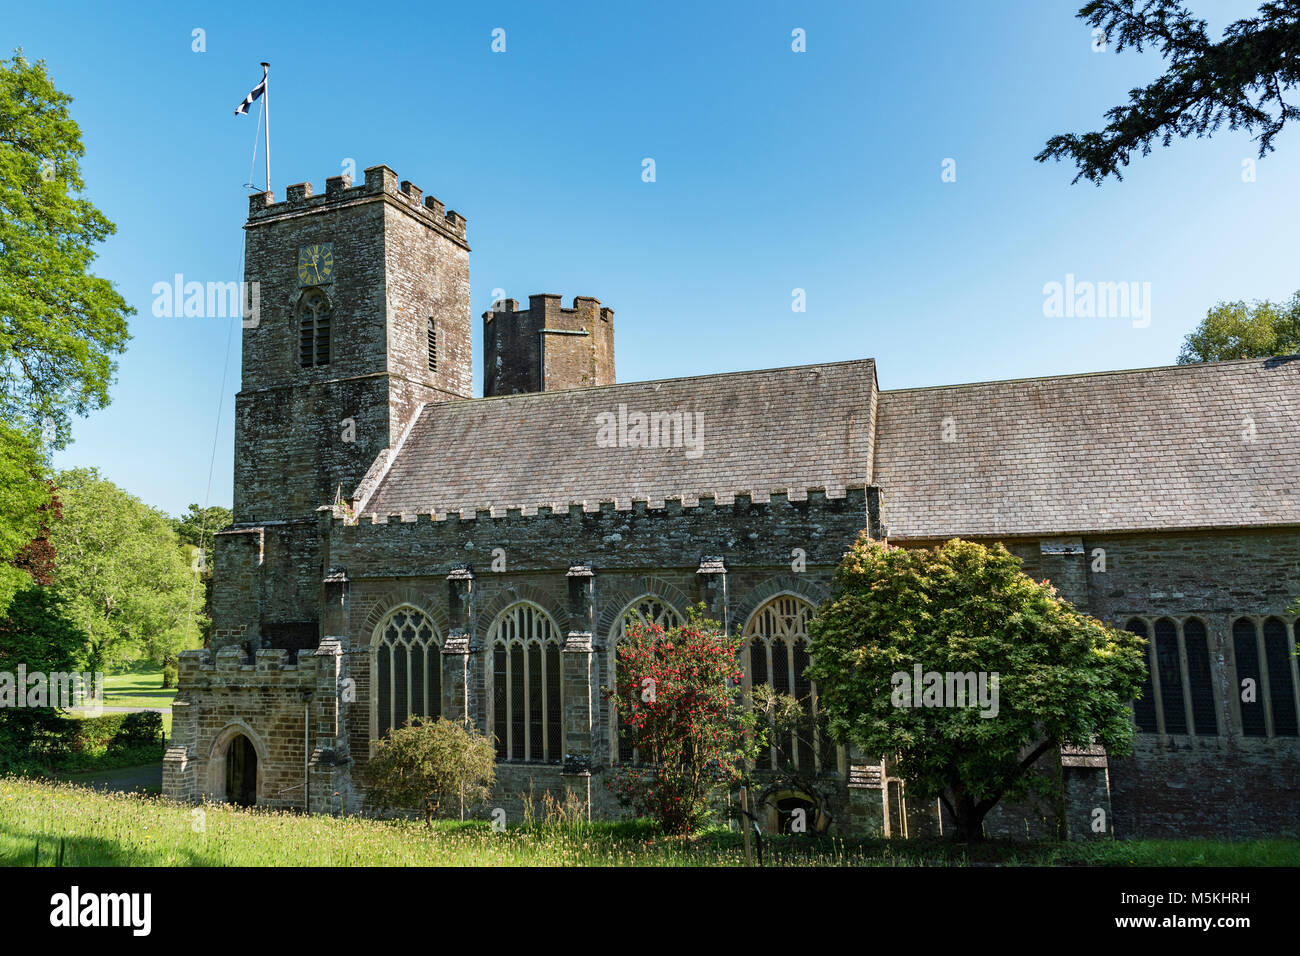 st.germans priory a large norman church in the village of st.germans, south east cornwall, england, britain, uk. - Stock Image